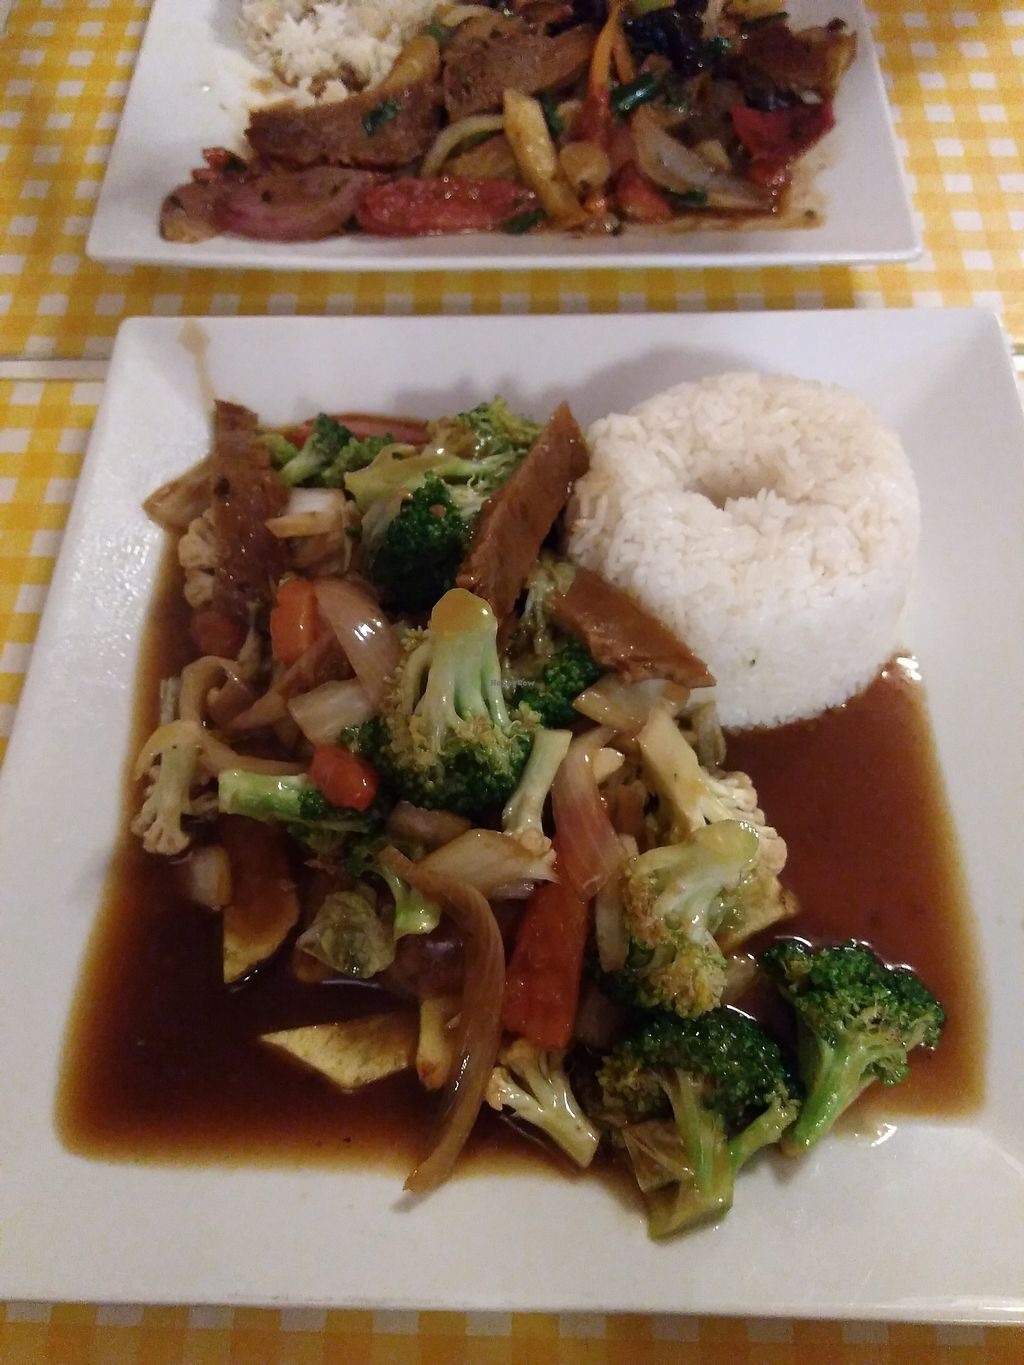 """Photo of Loving Hut  by <a href=""""/members/profile/emzie1983"""">emzie1983</a> <br/>Broccoli and seitan stir fry <br/> March 15, 2018  - <a href='/contact/abuse/image/52645/370814'>Report</a>"""